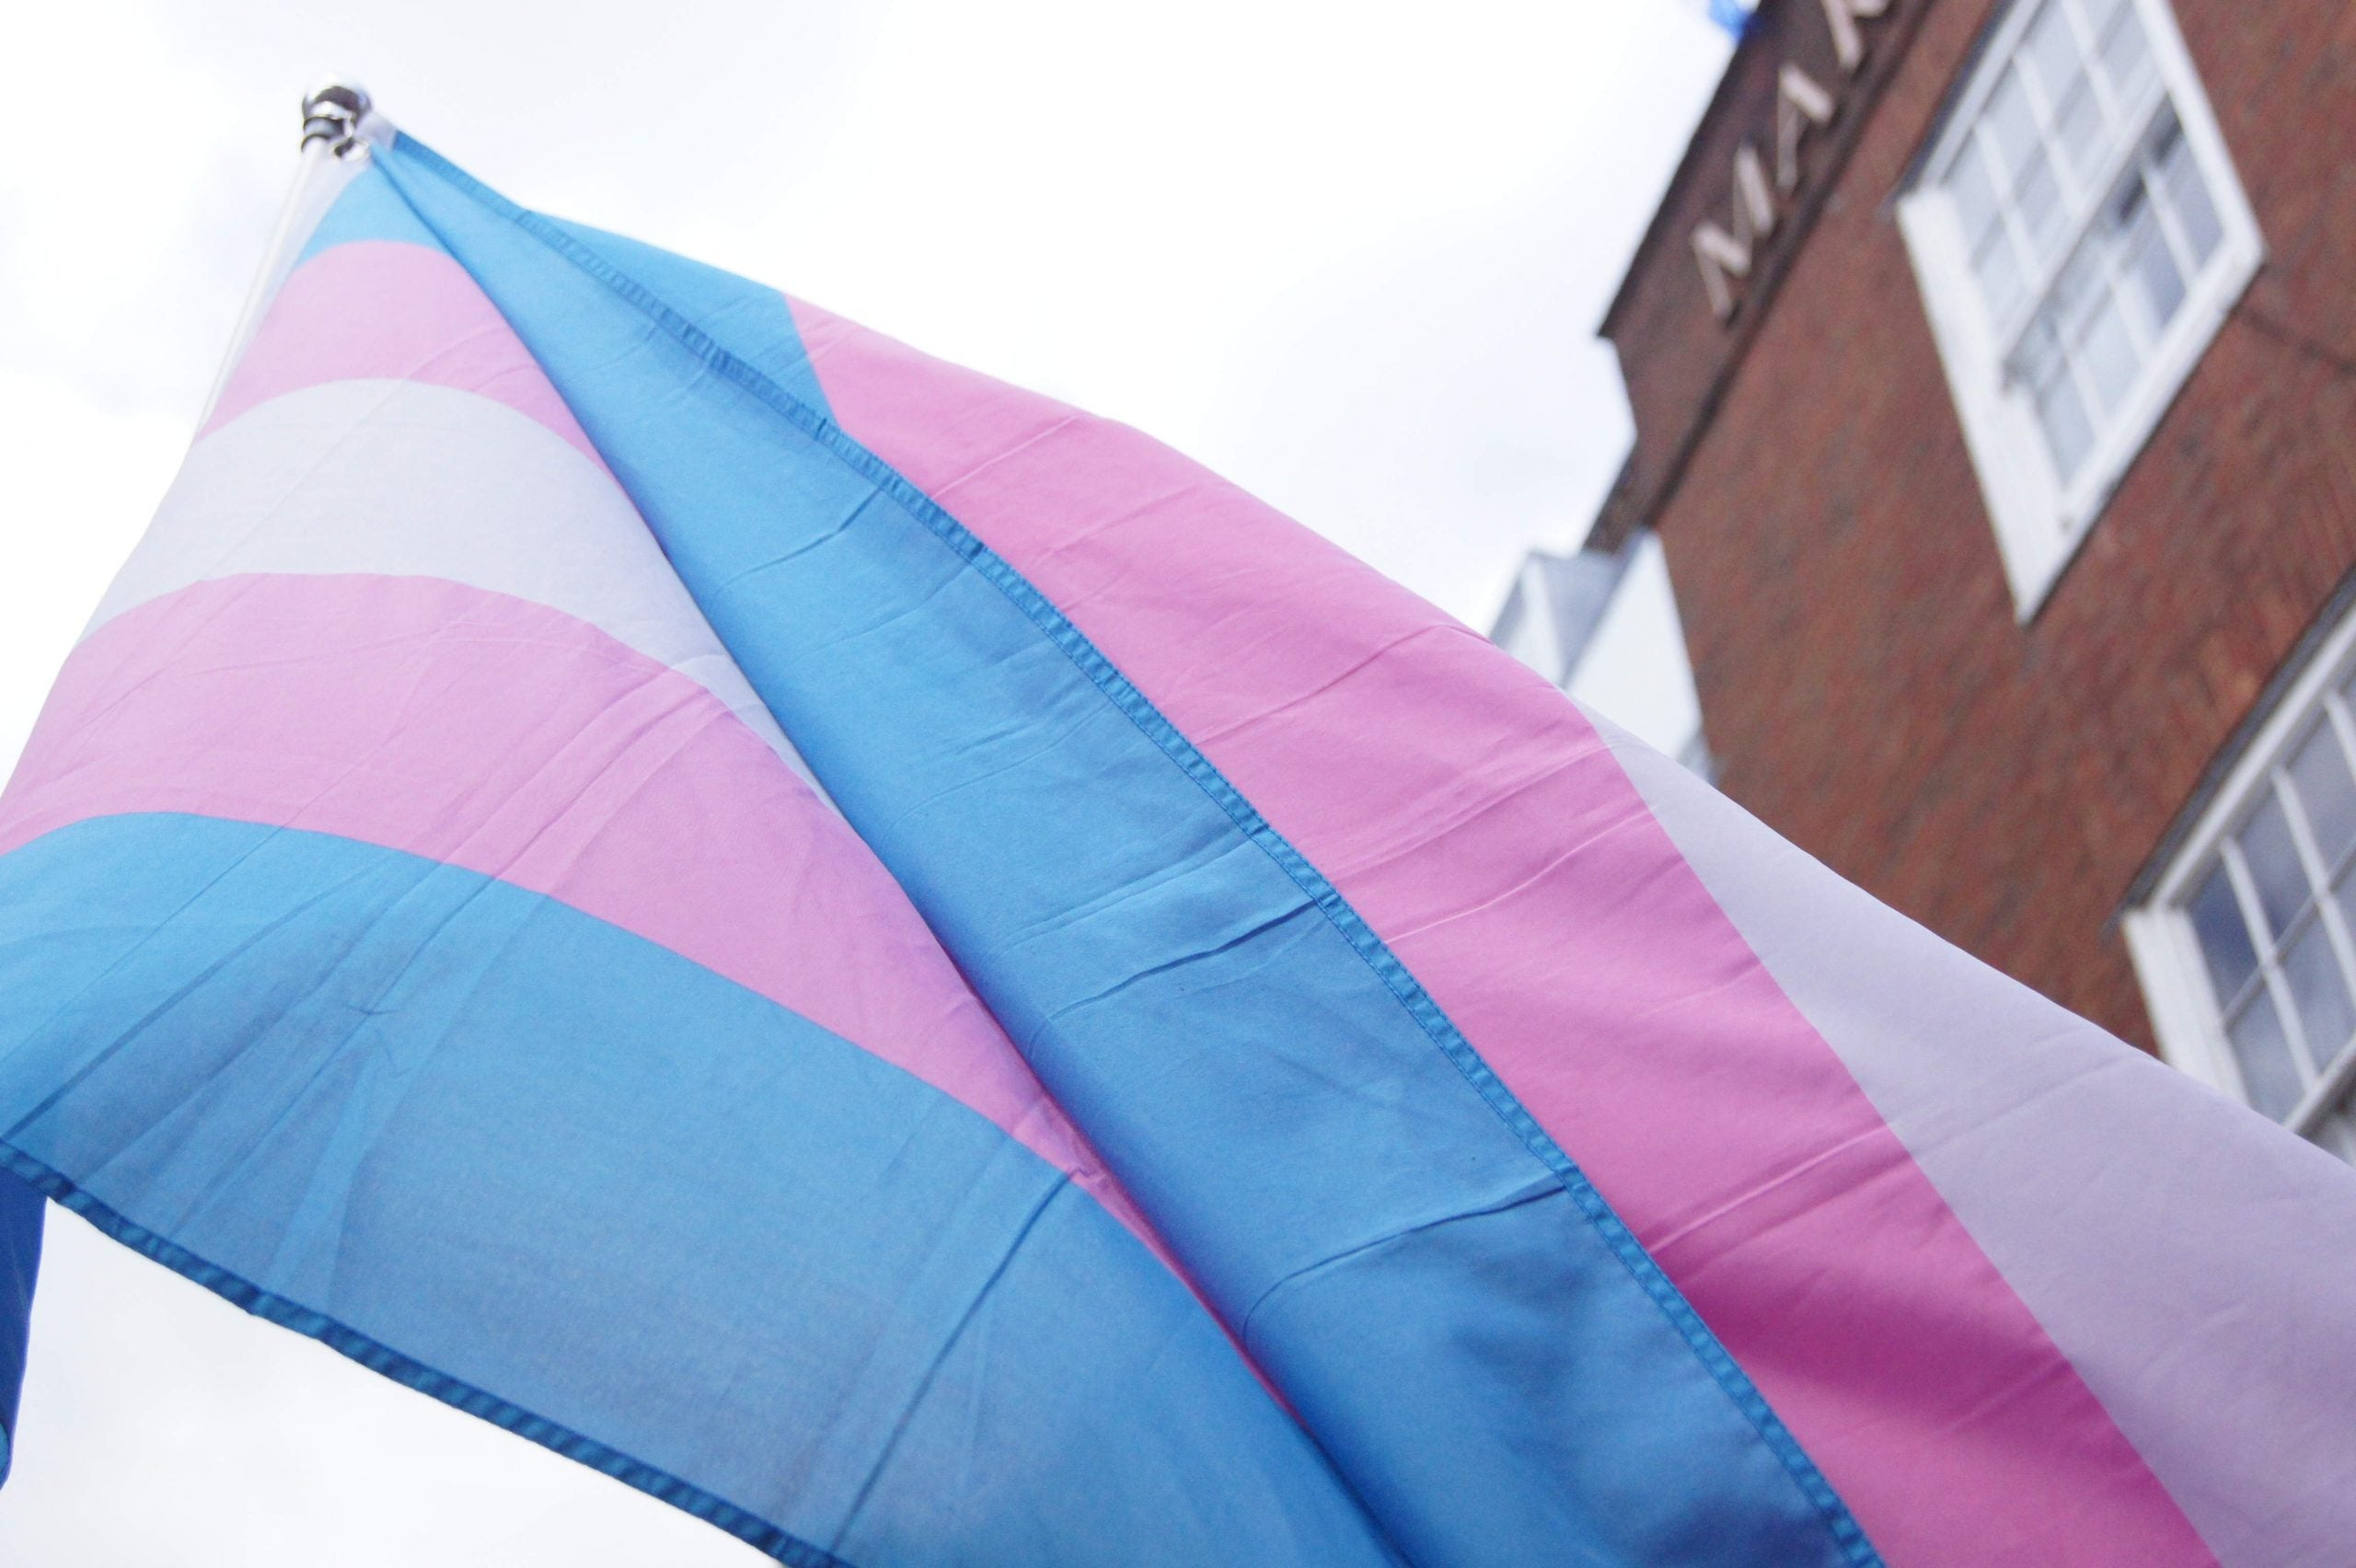 Trans pride is great but it's not enough to camouflage discrimination